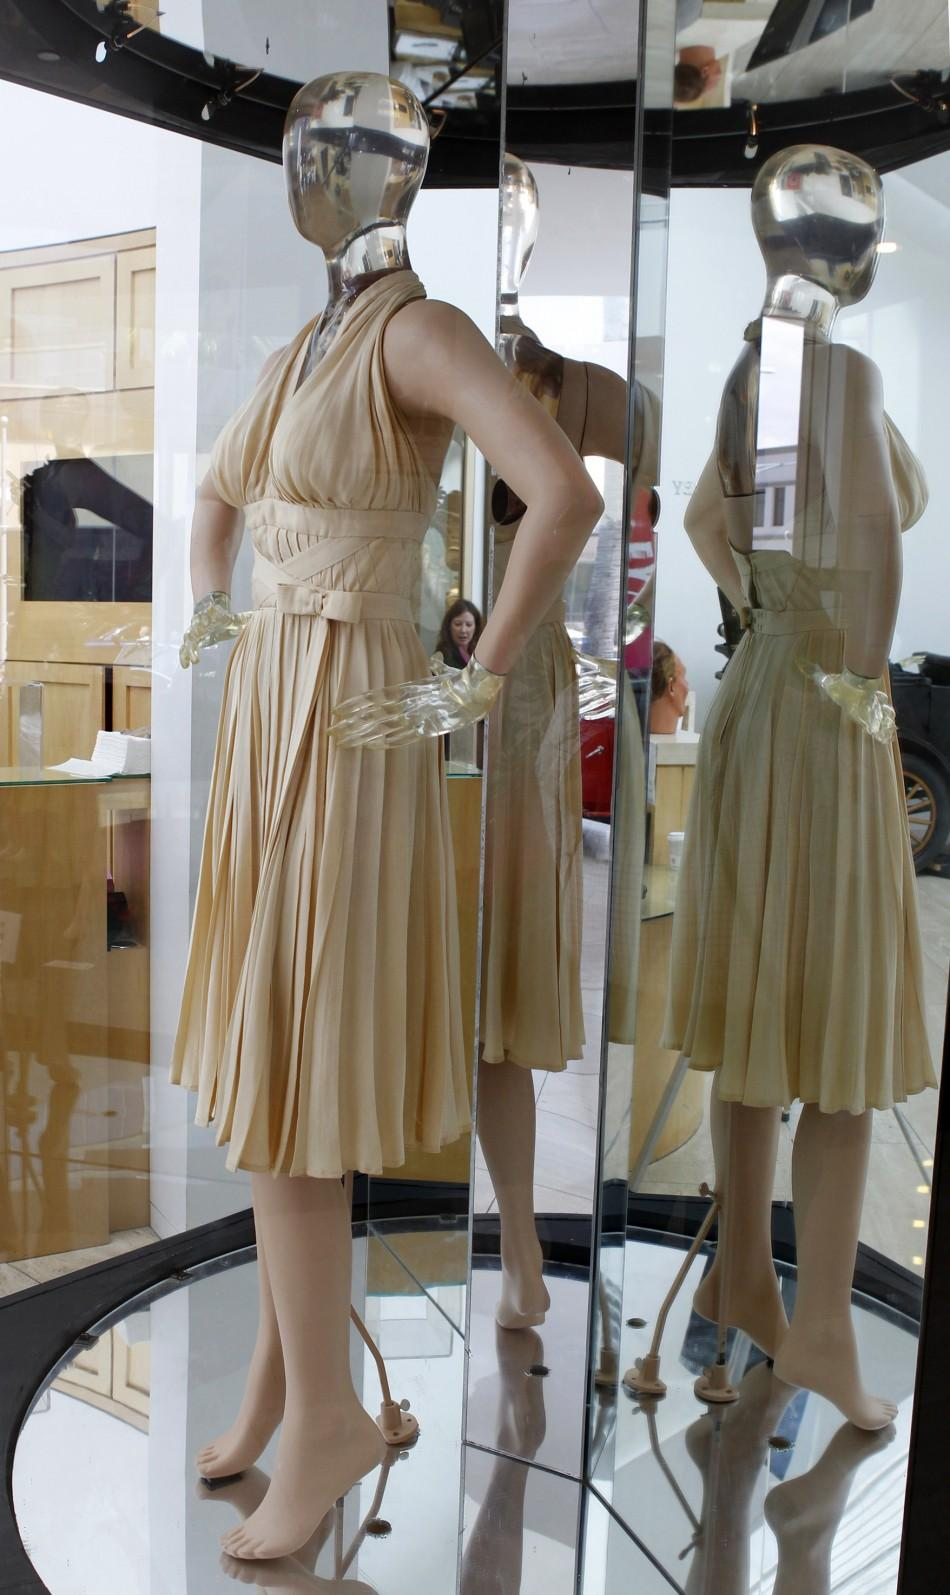 The ivory-pleated Subway dress worn by actress Marilyn Monroe from the 1955 film The Seven Year Itch